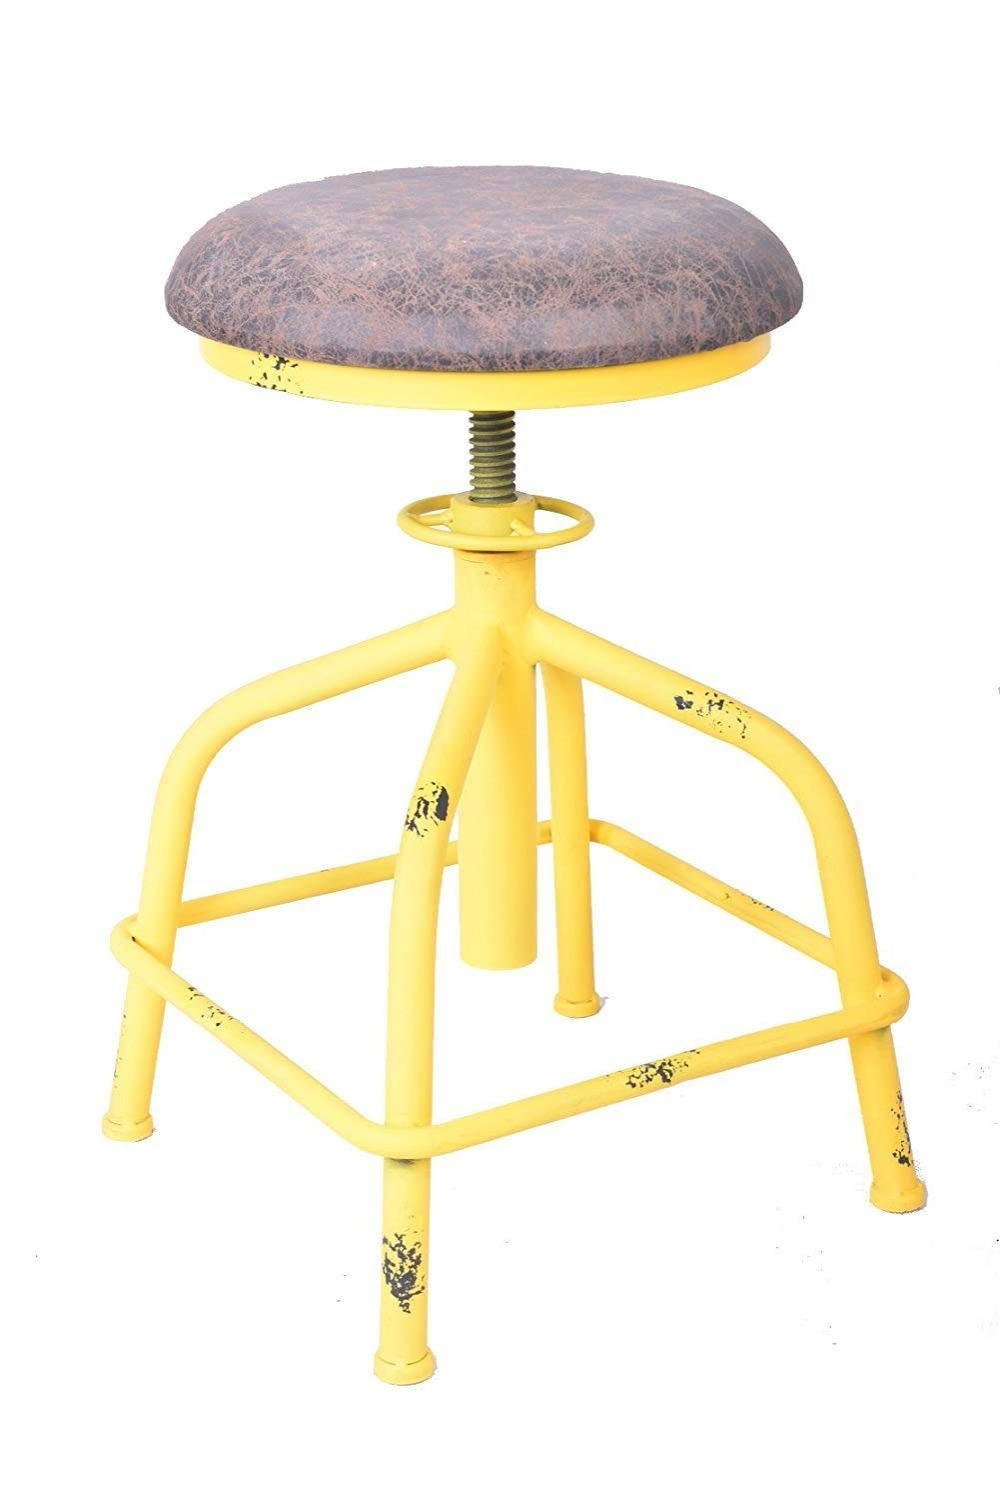 American Antique Industrial Design PU Leather Bar Stool Round Seat Adjustable Height Swivel Chair